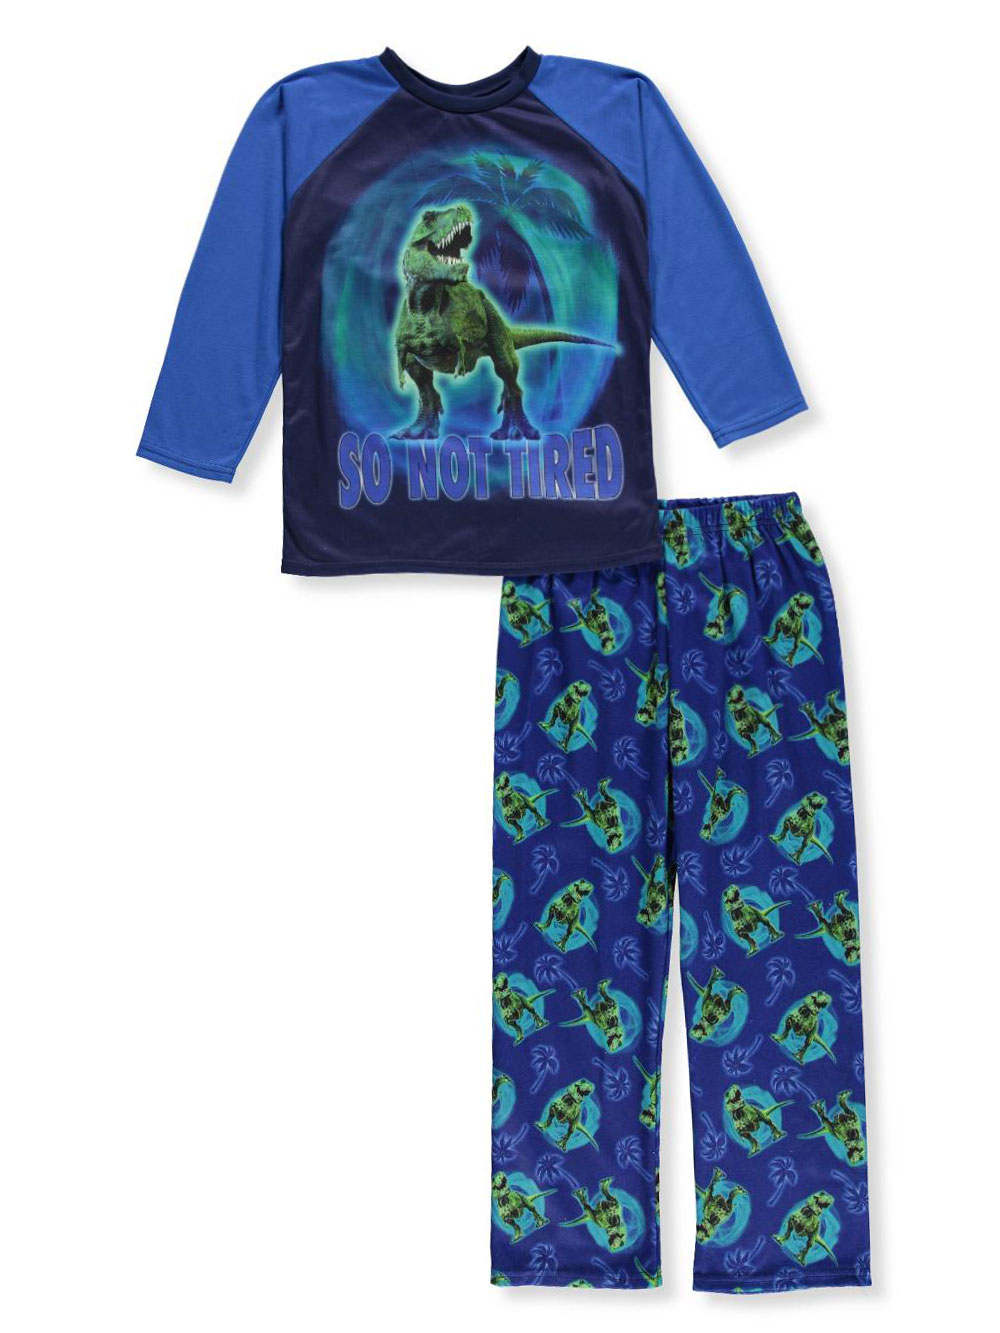 Quad Seven Boys' 2-Piece Pajamas